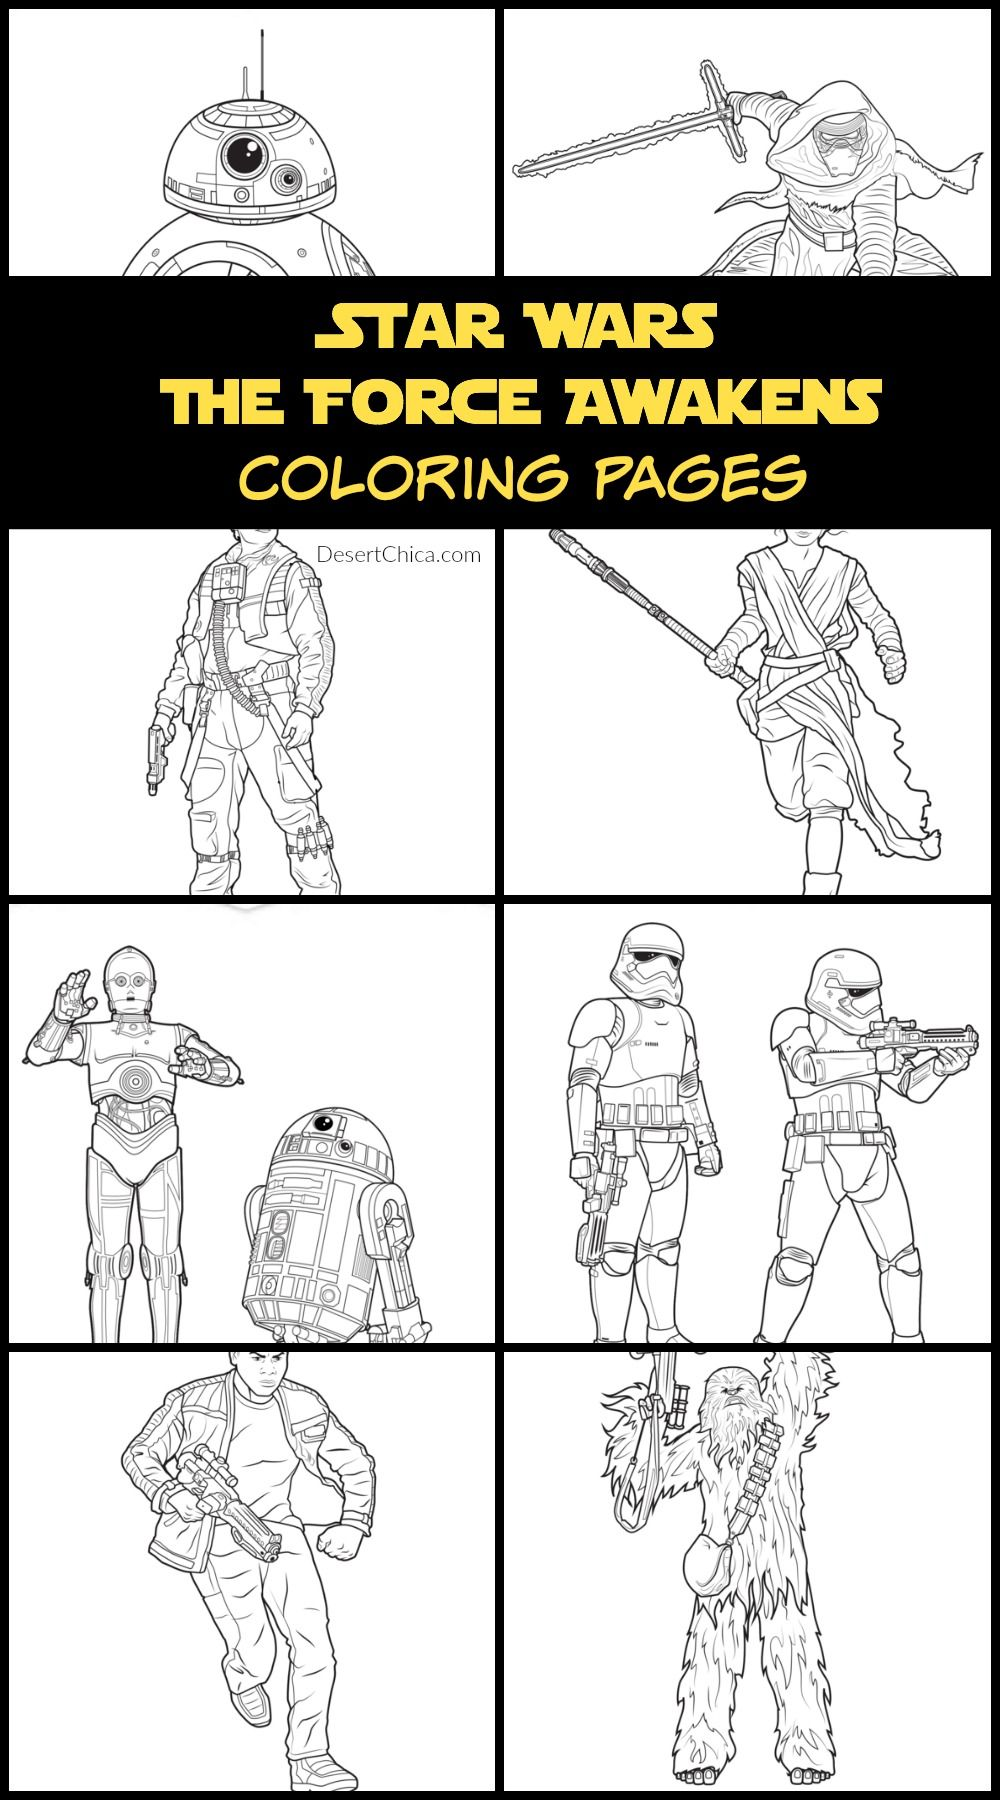 Star Wars The Force Awakens Coloring Pages And Activities